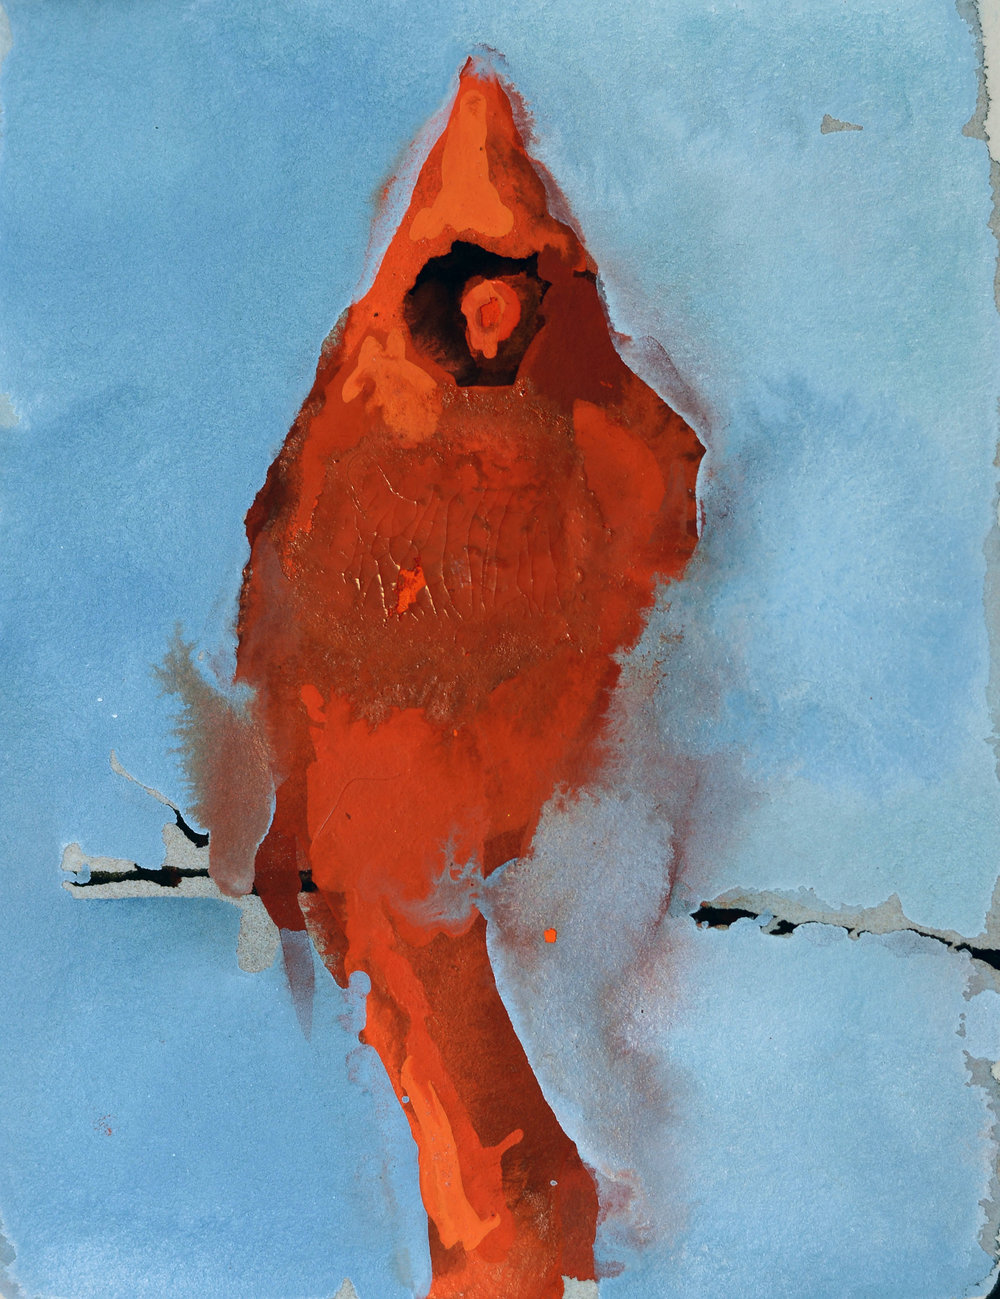 Cardinal no. 3_4x3 inset on 11 x 7.5 paper.jpg